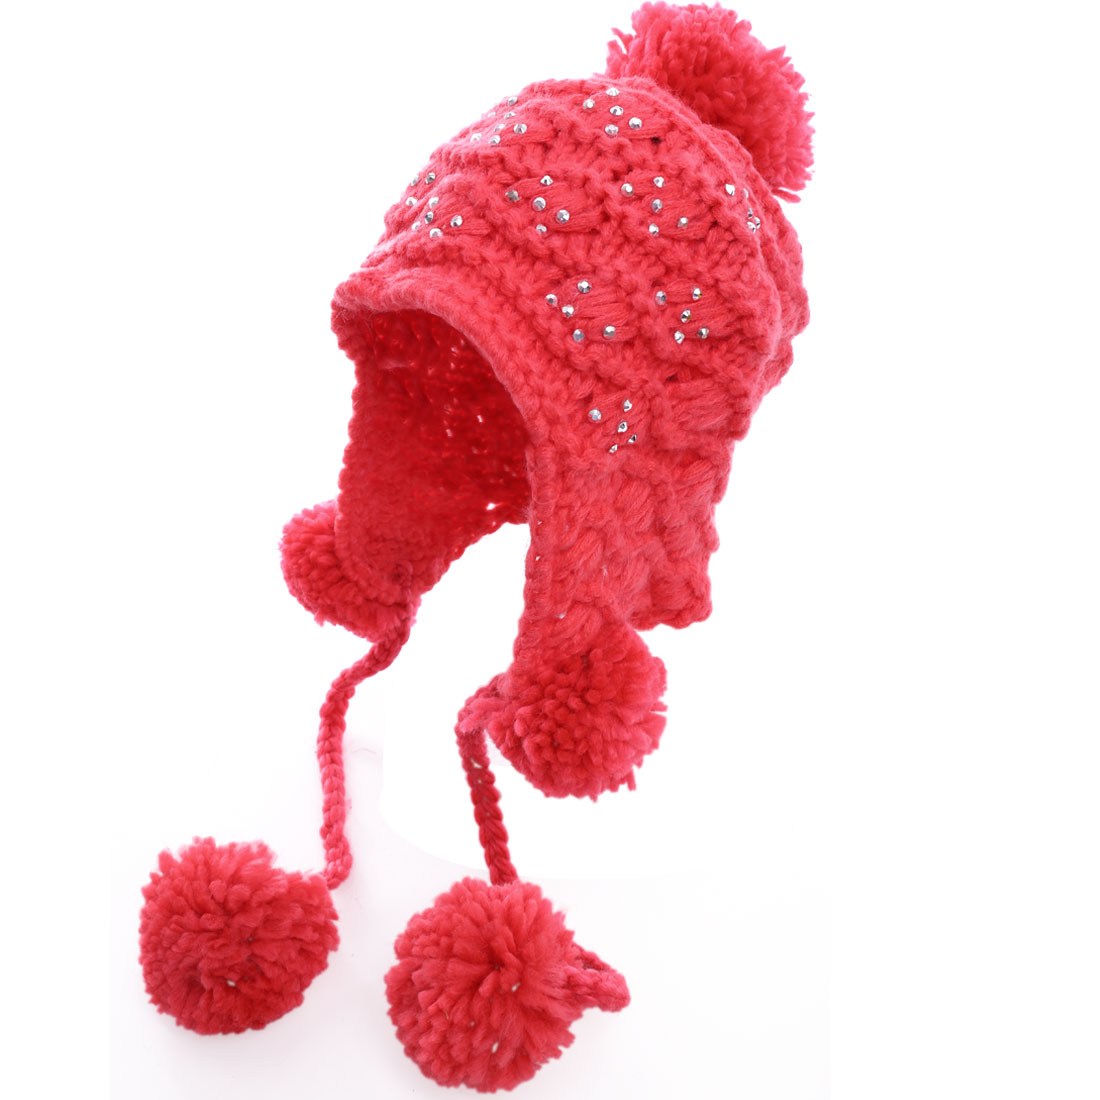 Lady Crochet Knitting Watermelon Red Pom Pom Beanie Cap